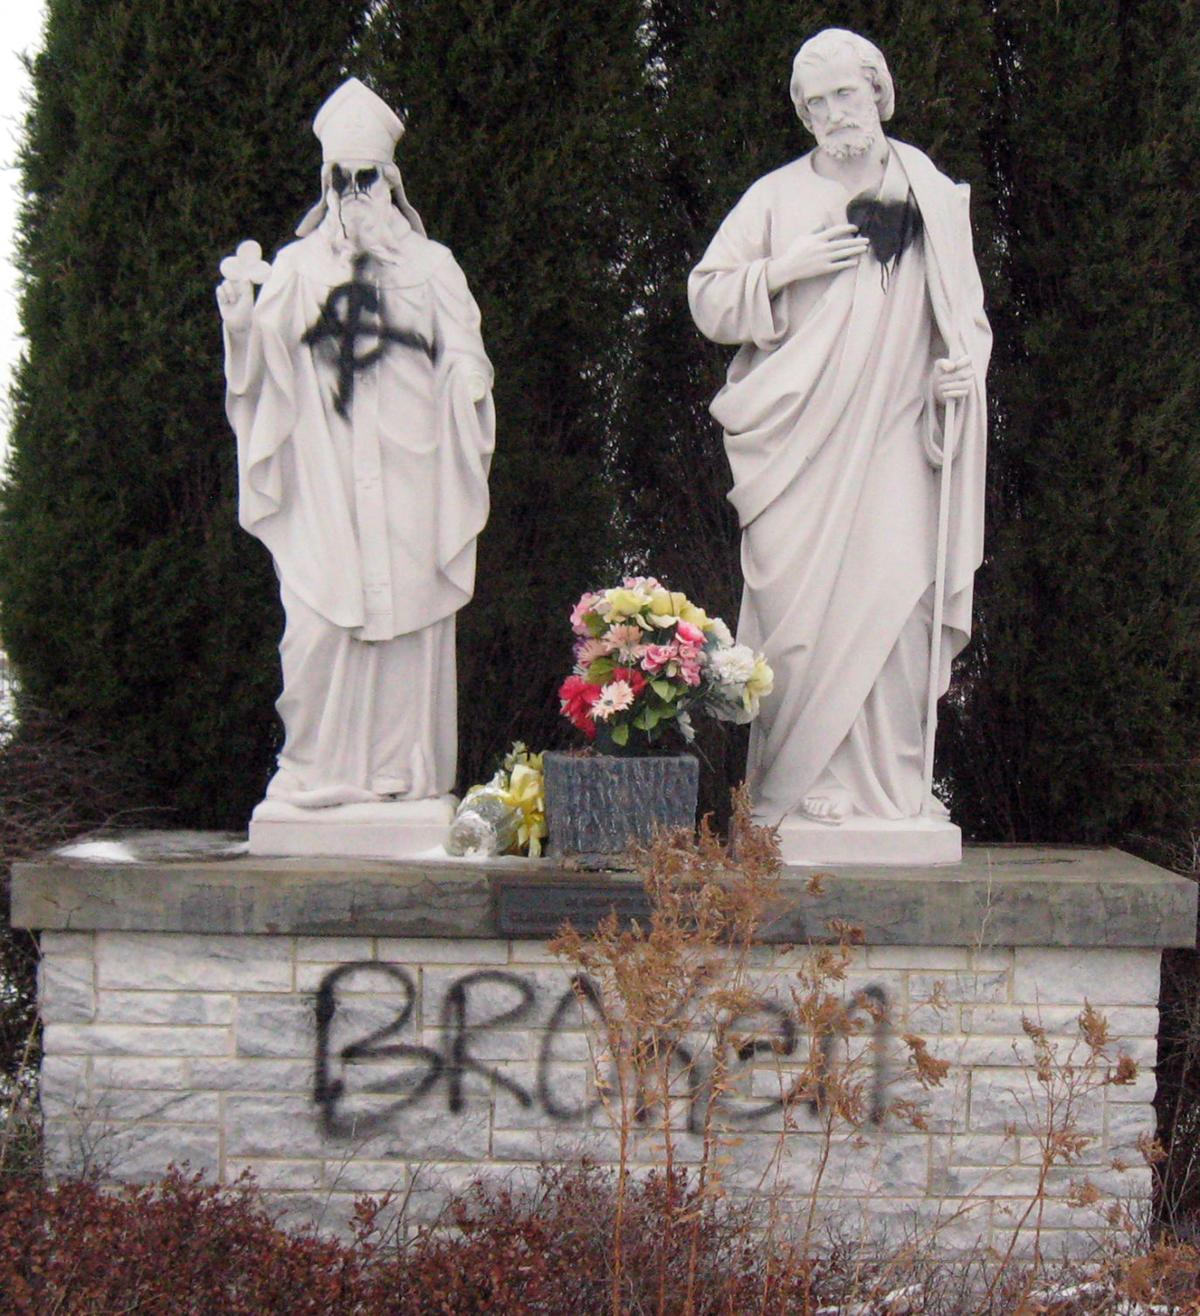 Cemetery Officials Say Statues Walls Vandalized